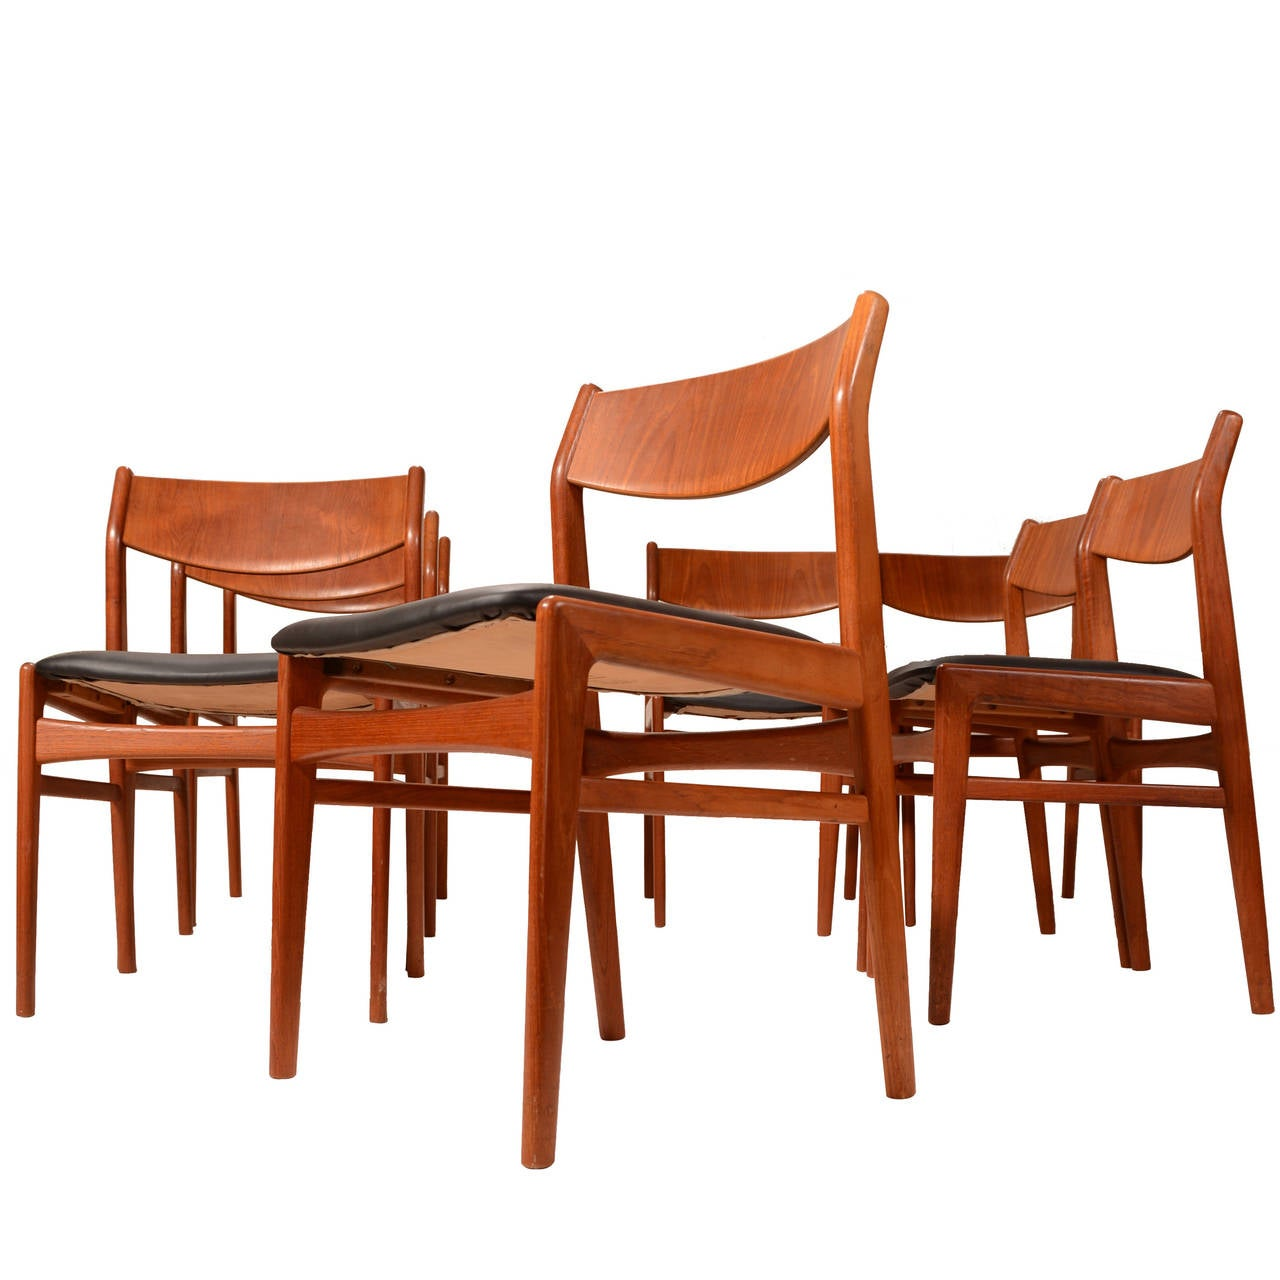 Exceptionnel Set Of Eight Teak And Leather Dining Chairs By Folke Ohlsson For DUX